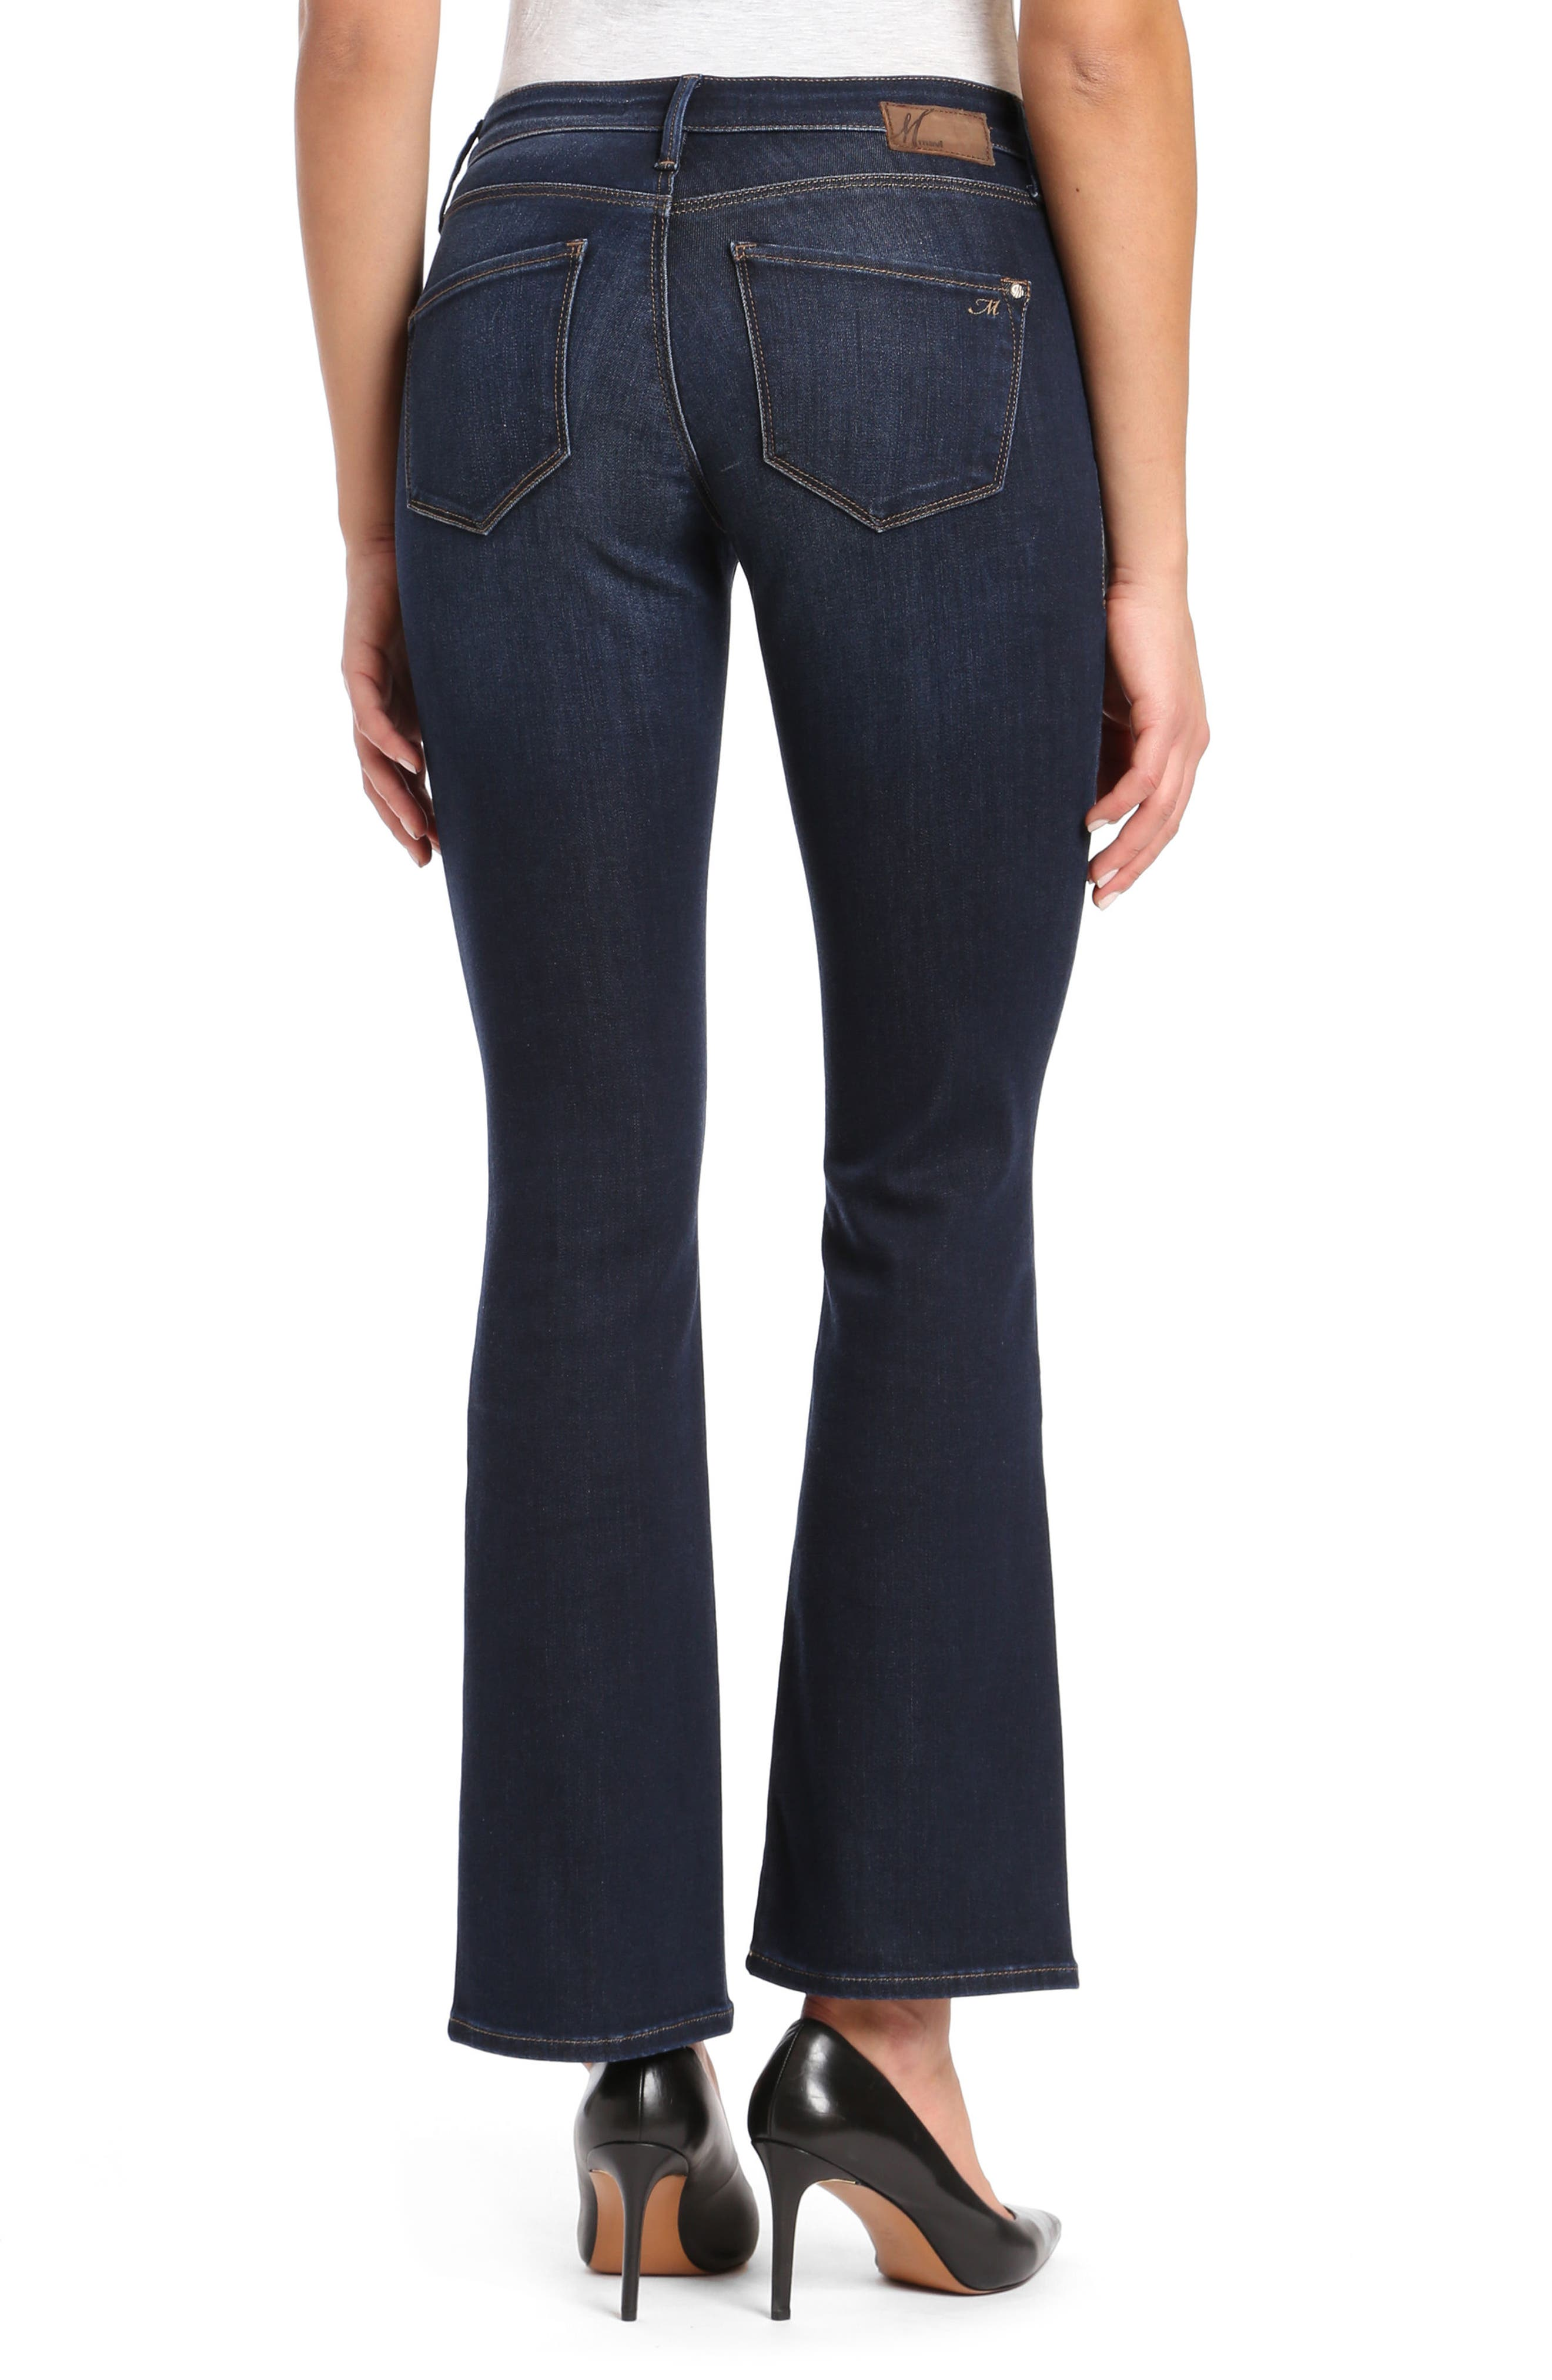 Molly Classic Bootcuts Jeans,                             Alternate thumbnail 2, color,                             Deep Super Soft